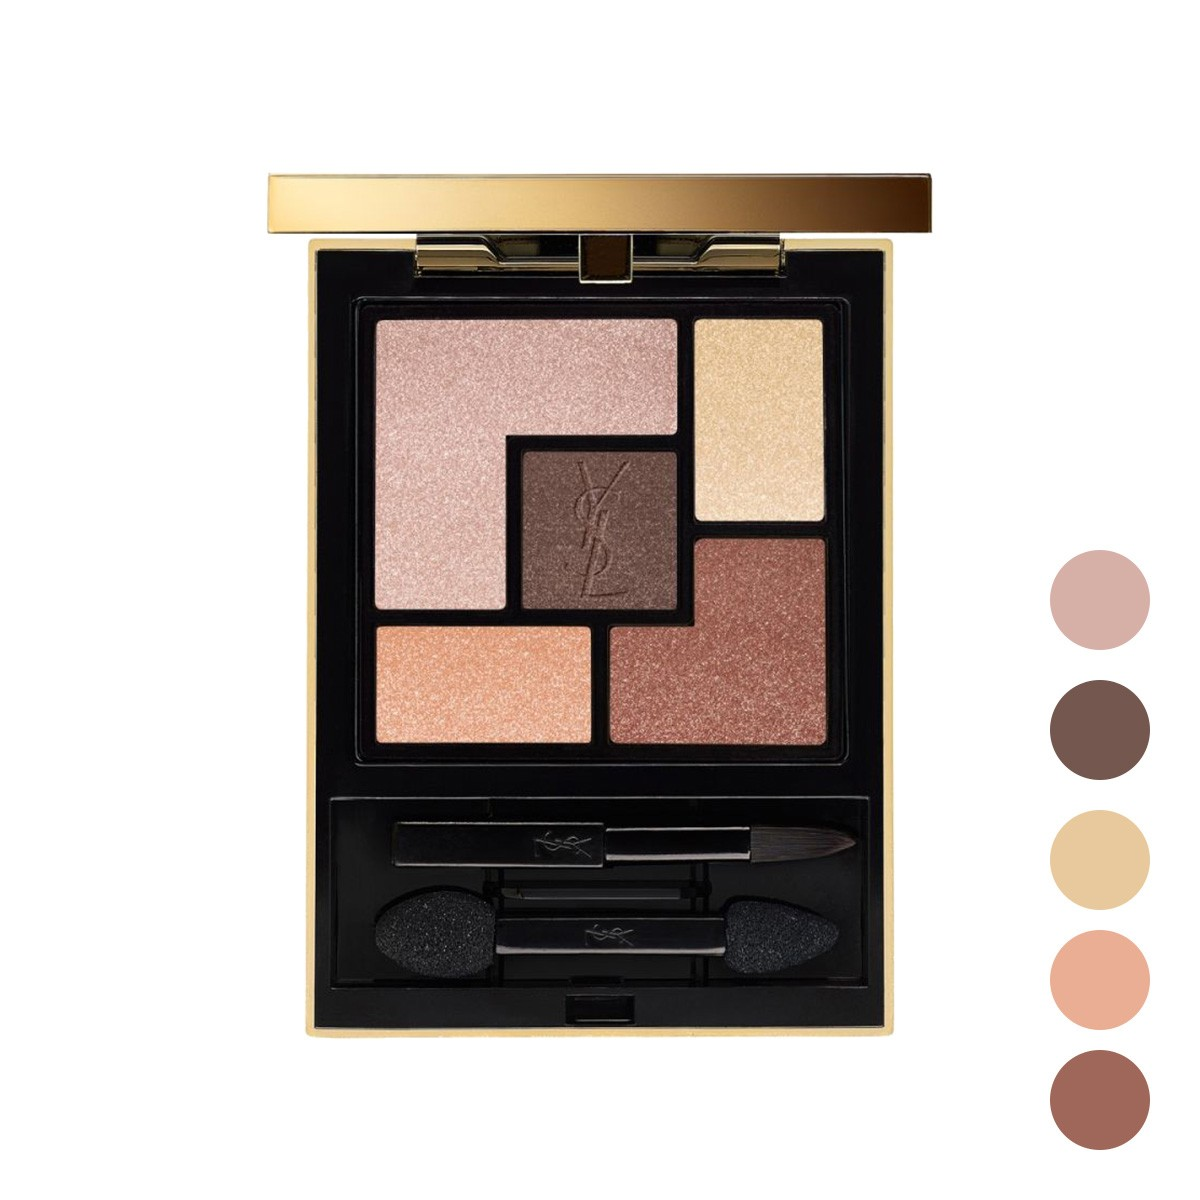 couture_palette_couture_palette_rosy_glow_14_2